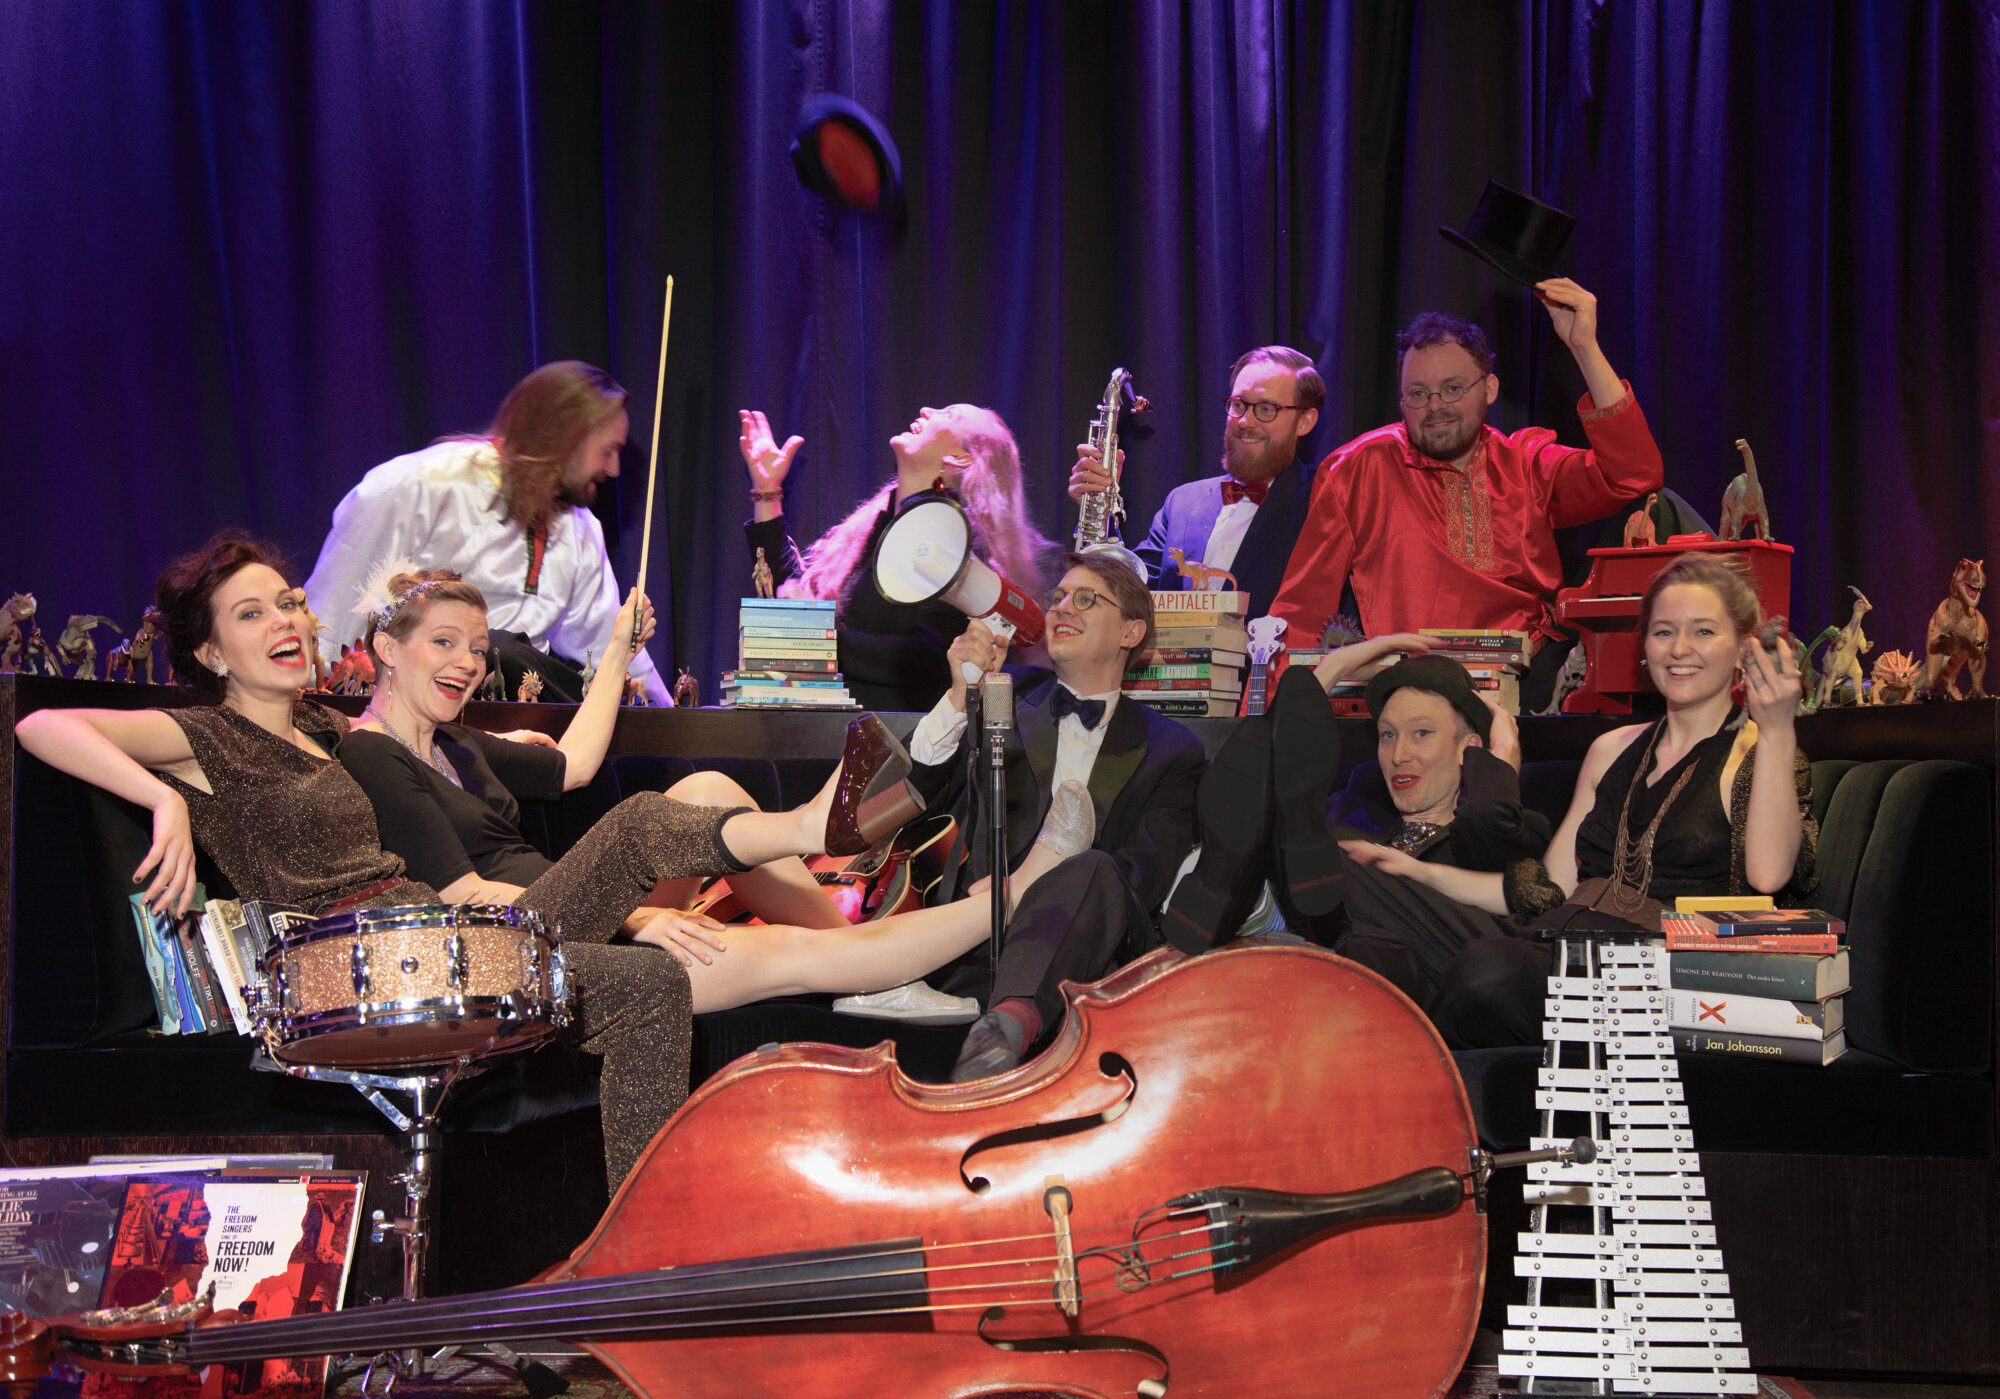 Cats and Dinosaurs - Cats and Dinosaurs is a left wing feminist swing collective playing original lindyhop dance music with political lyrics in Swedish and English, AKA